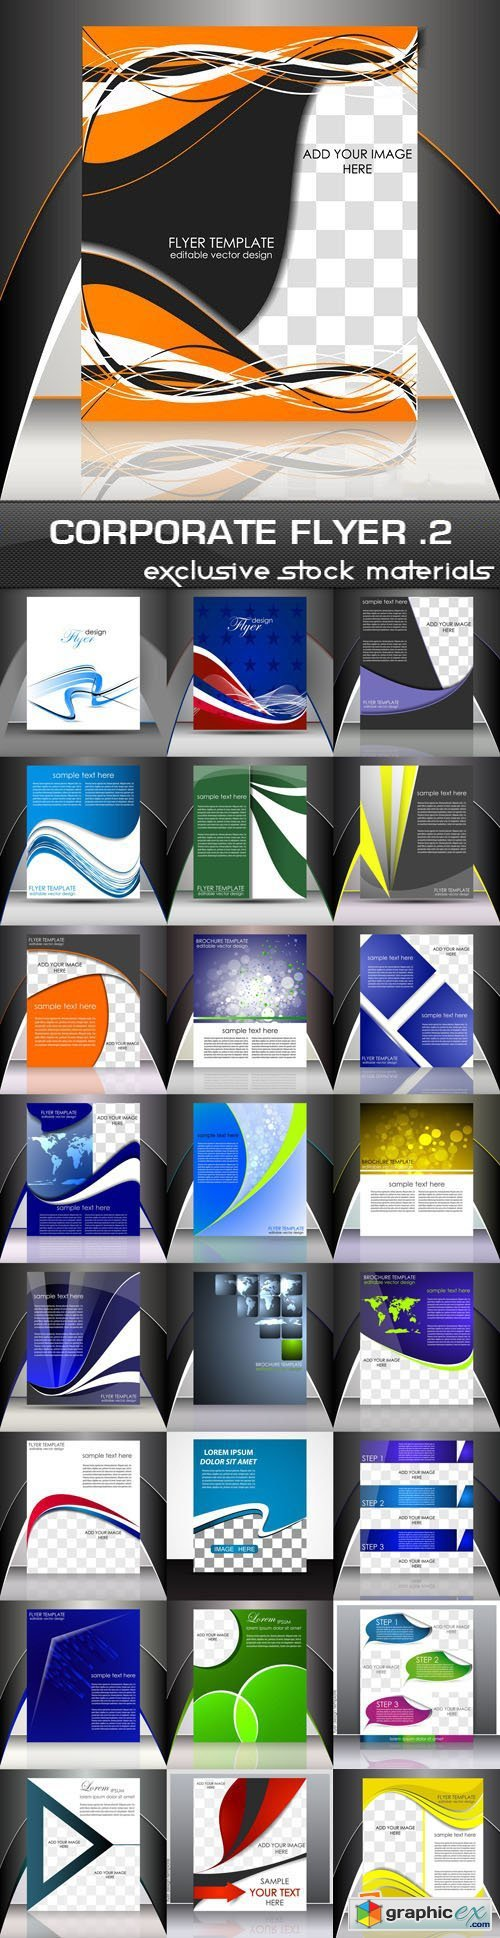 Corporate Flyer Template #2, 25 EPS